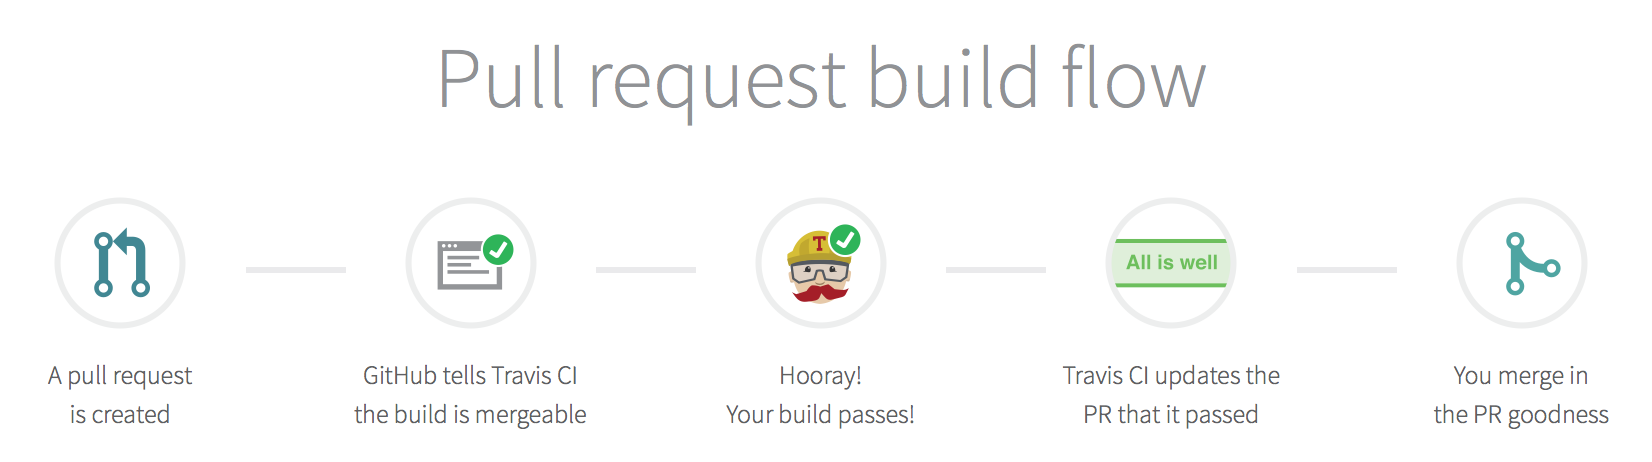 How TravisCI Pull Requests Work